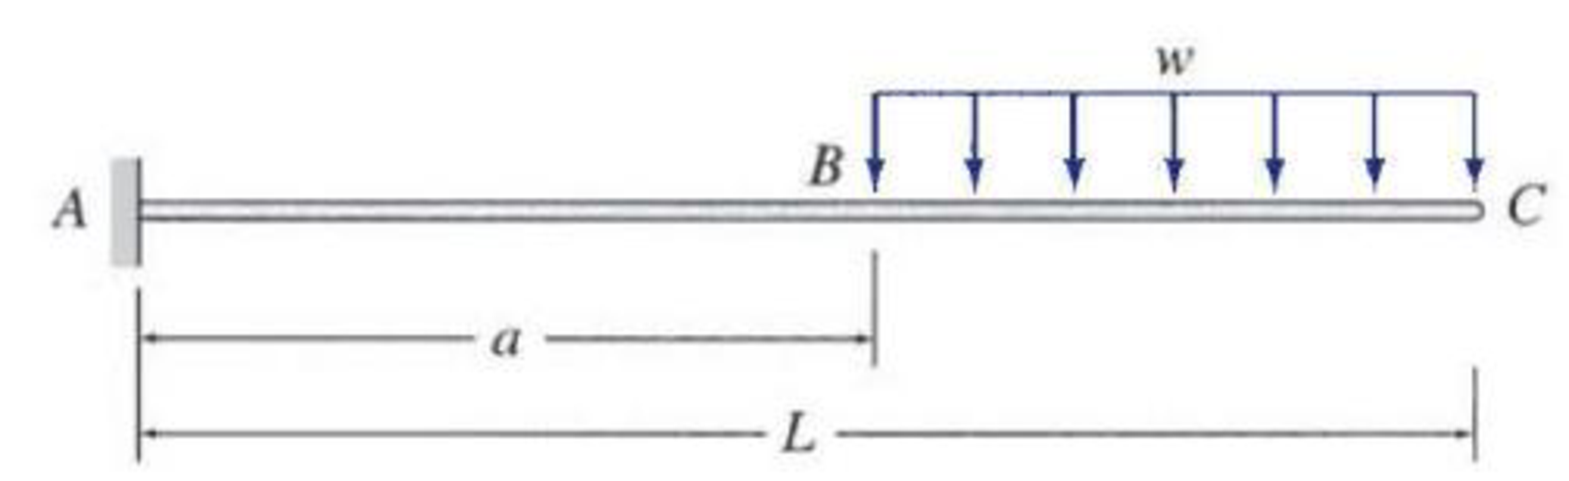 Chapter 6, Problem 3P, Determine the equations for slope and deflection of the beam shown by the direct integration method.